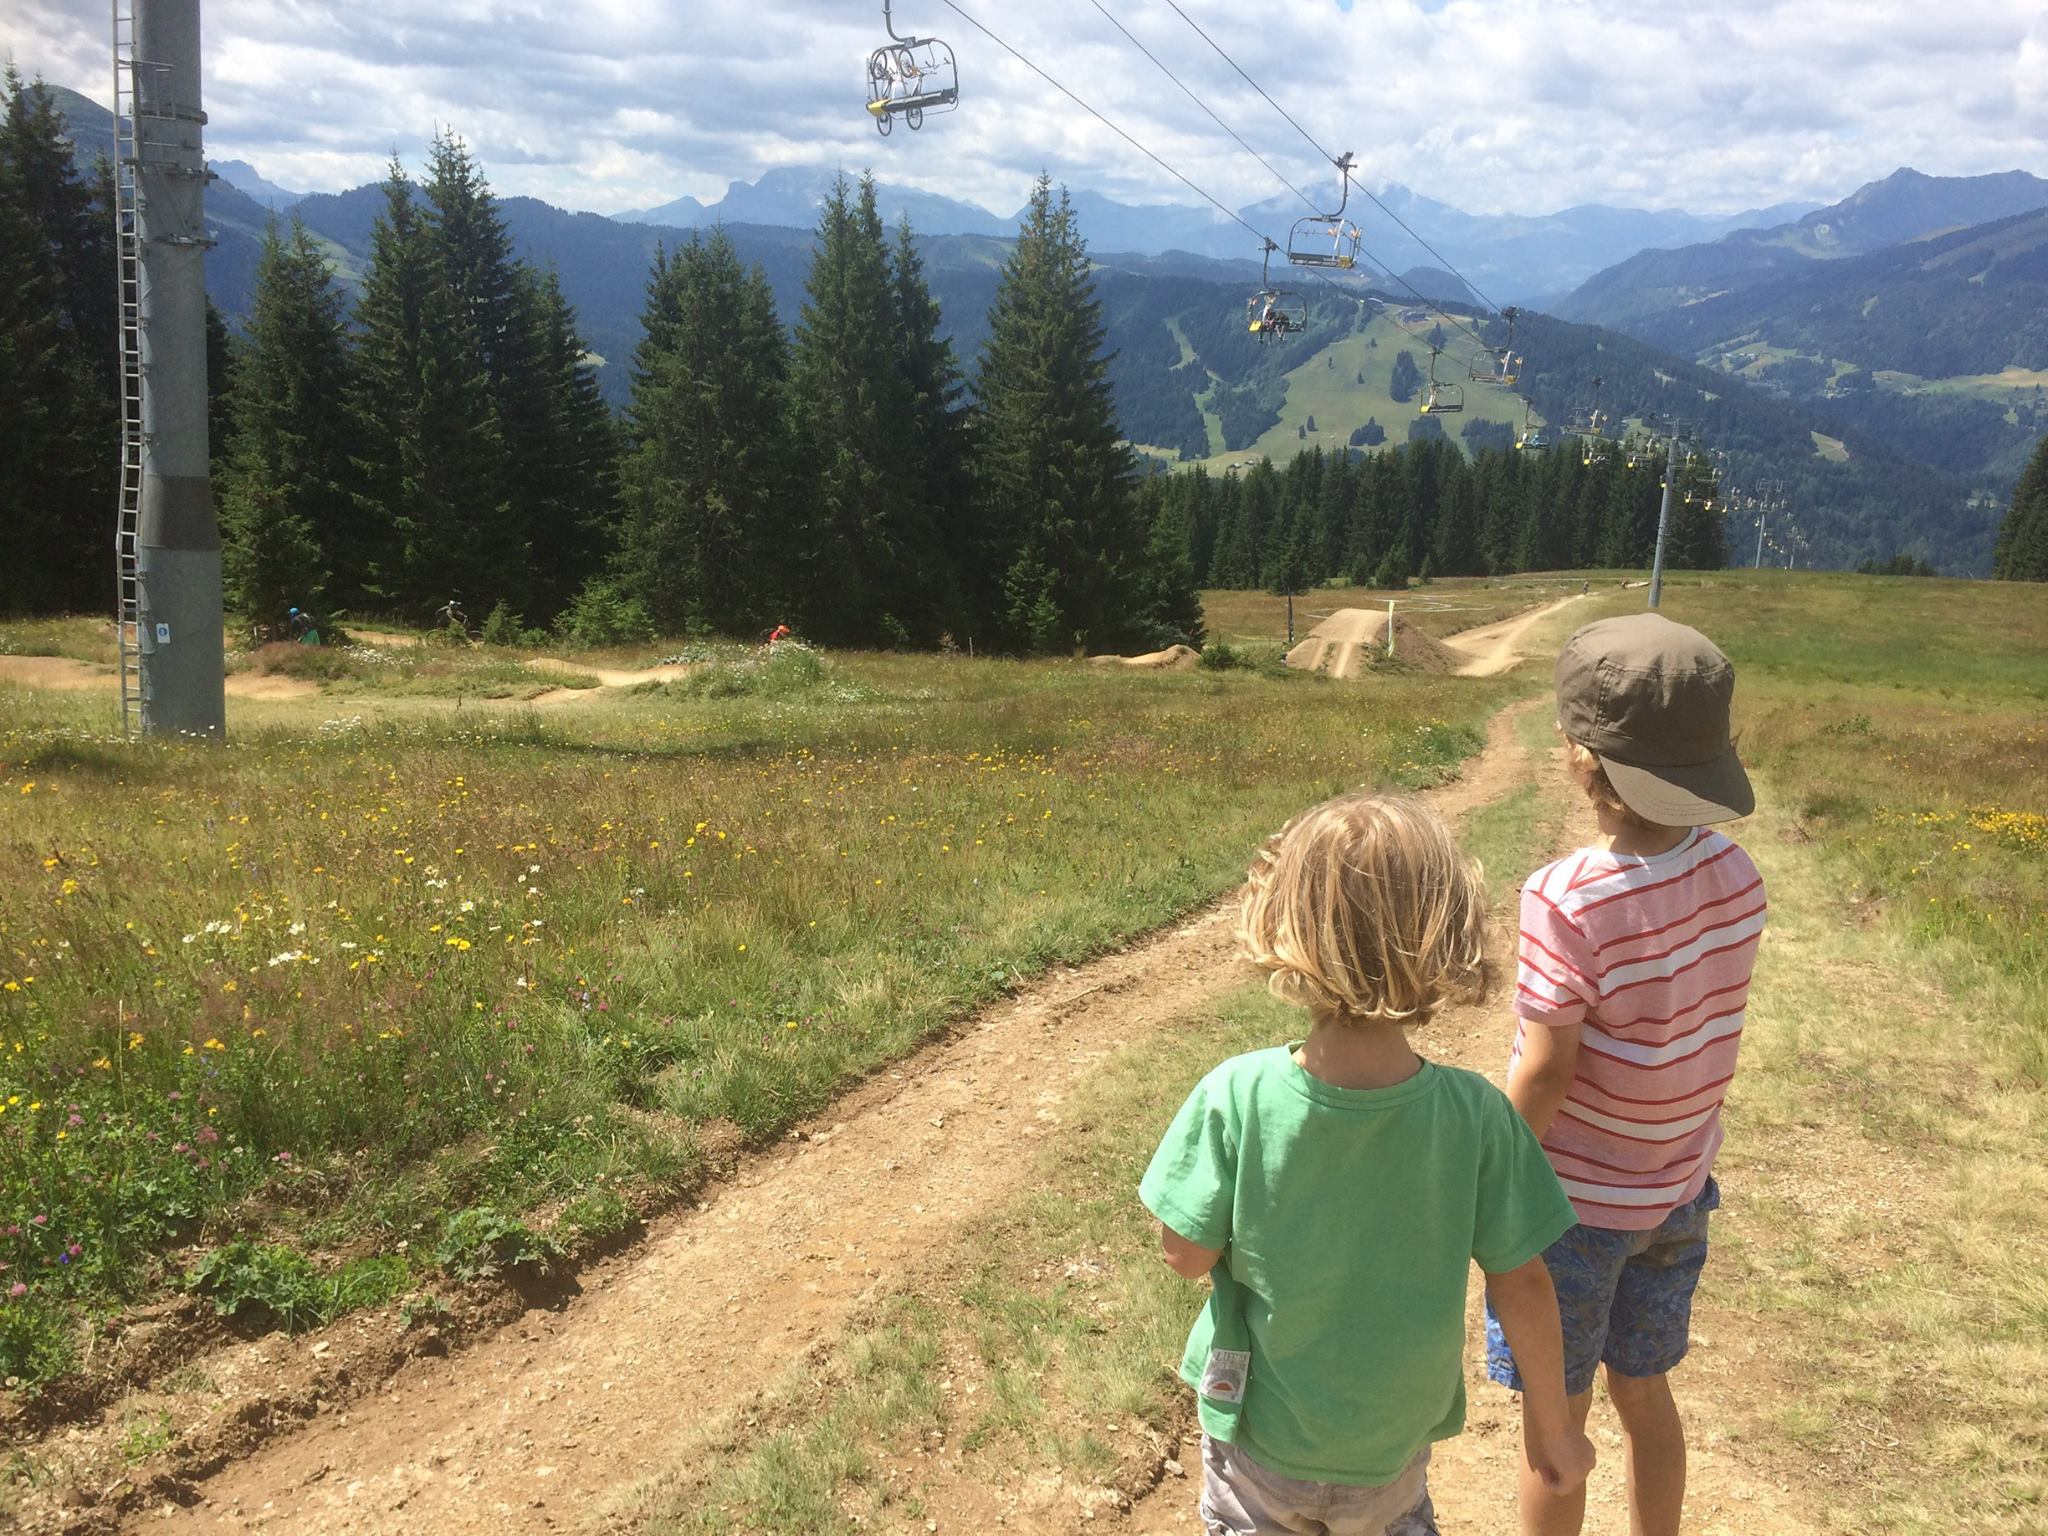 Hiking on Super Morzine